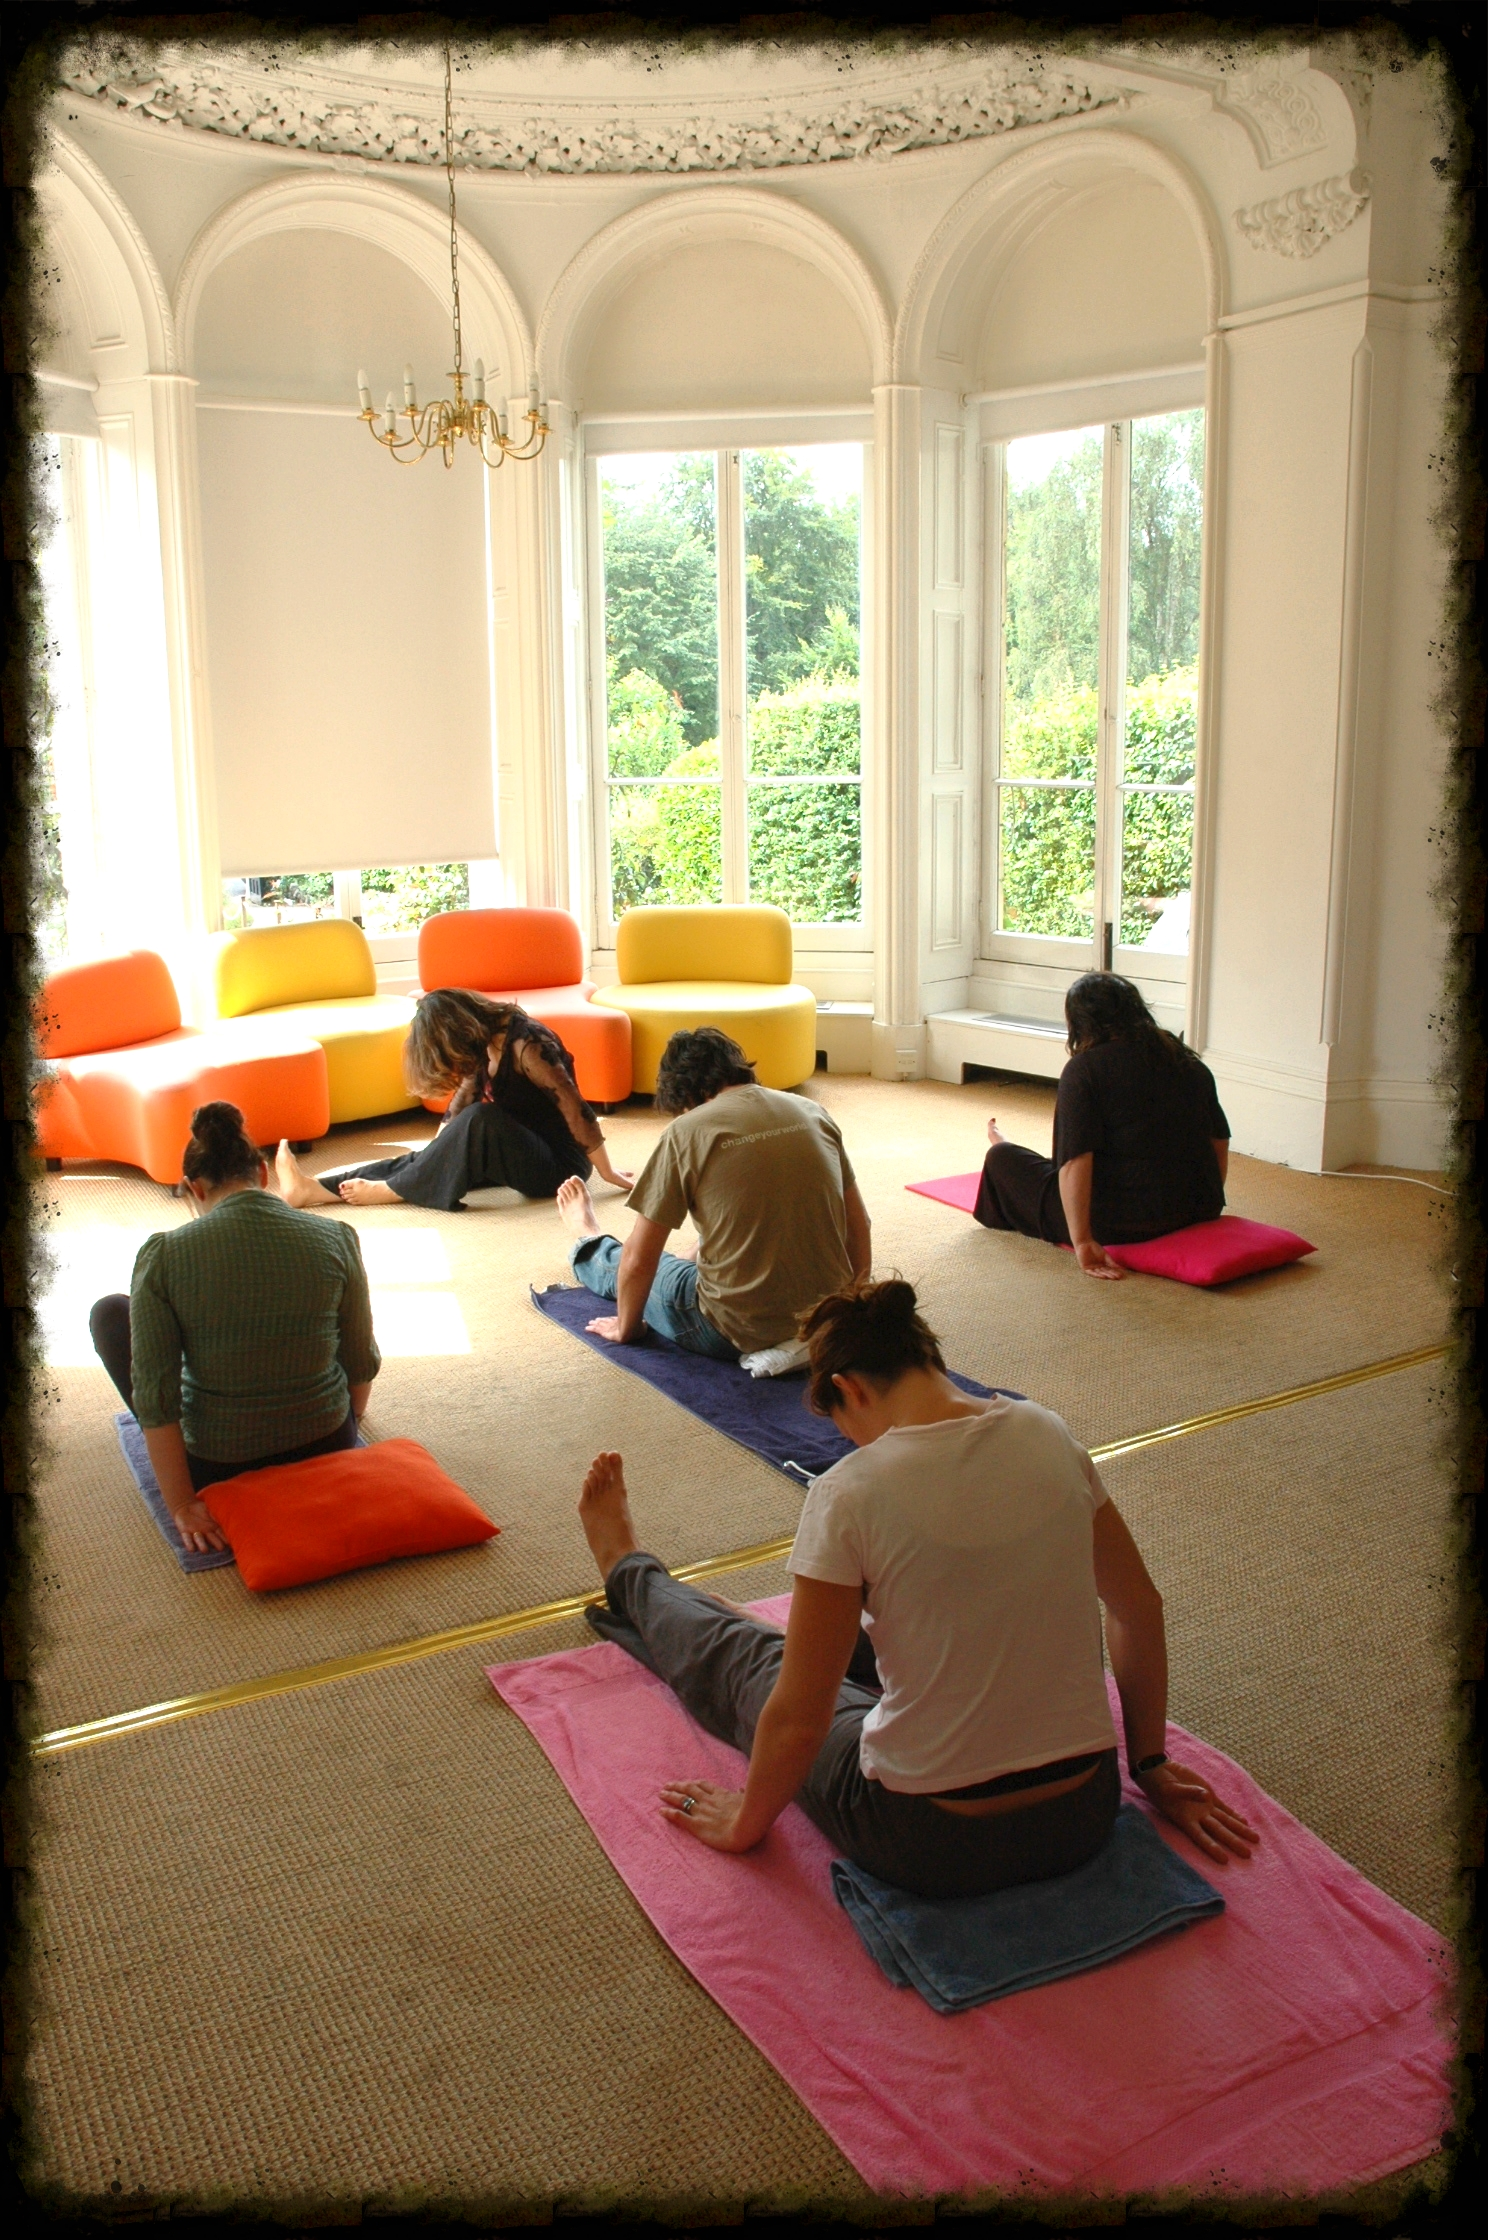 coporate-onsite-pilates-classes-in abeautiful-airy-boardroom